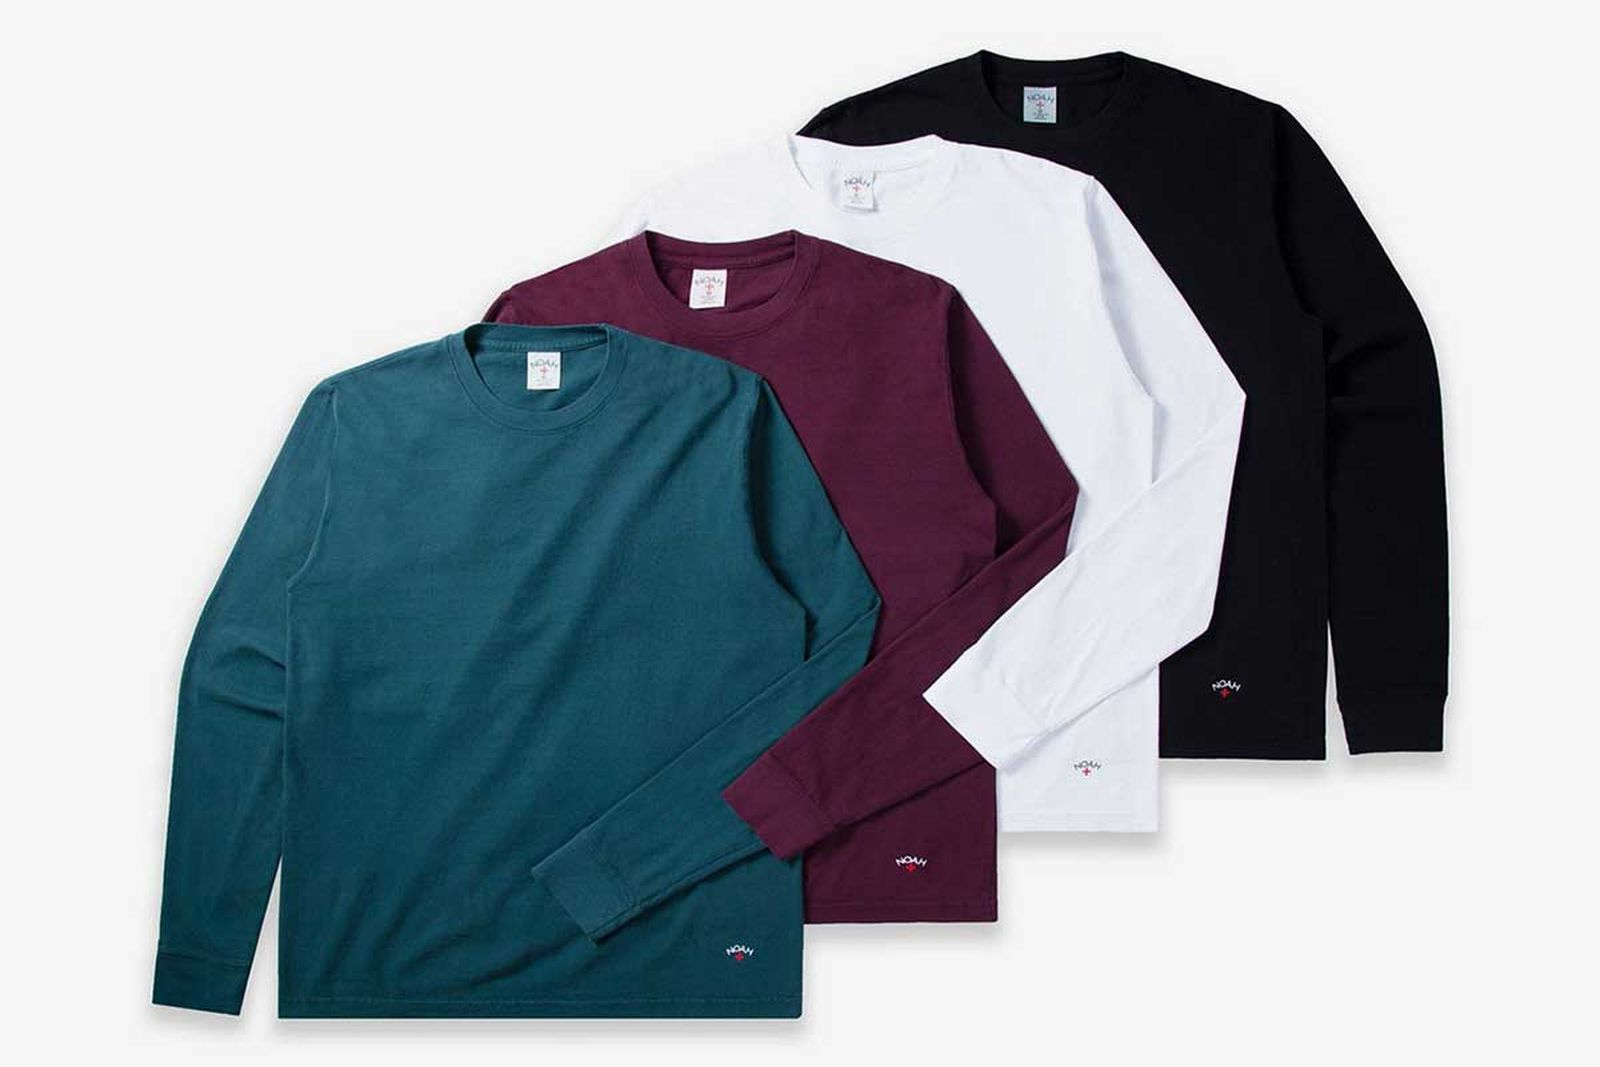 noah garbage long sleeve tees